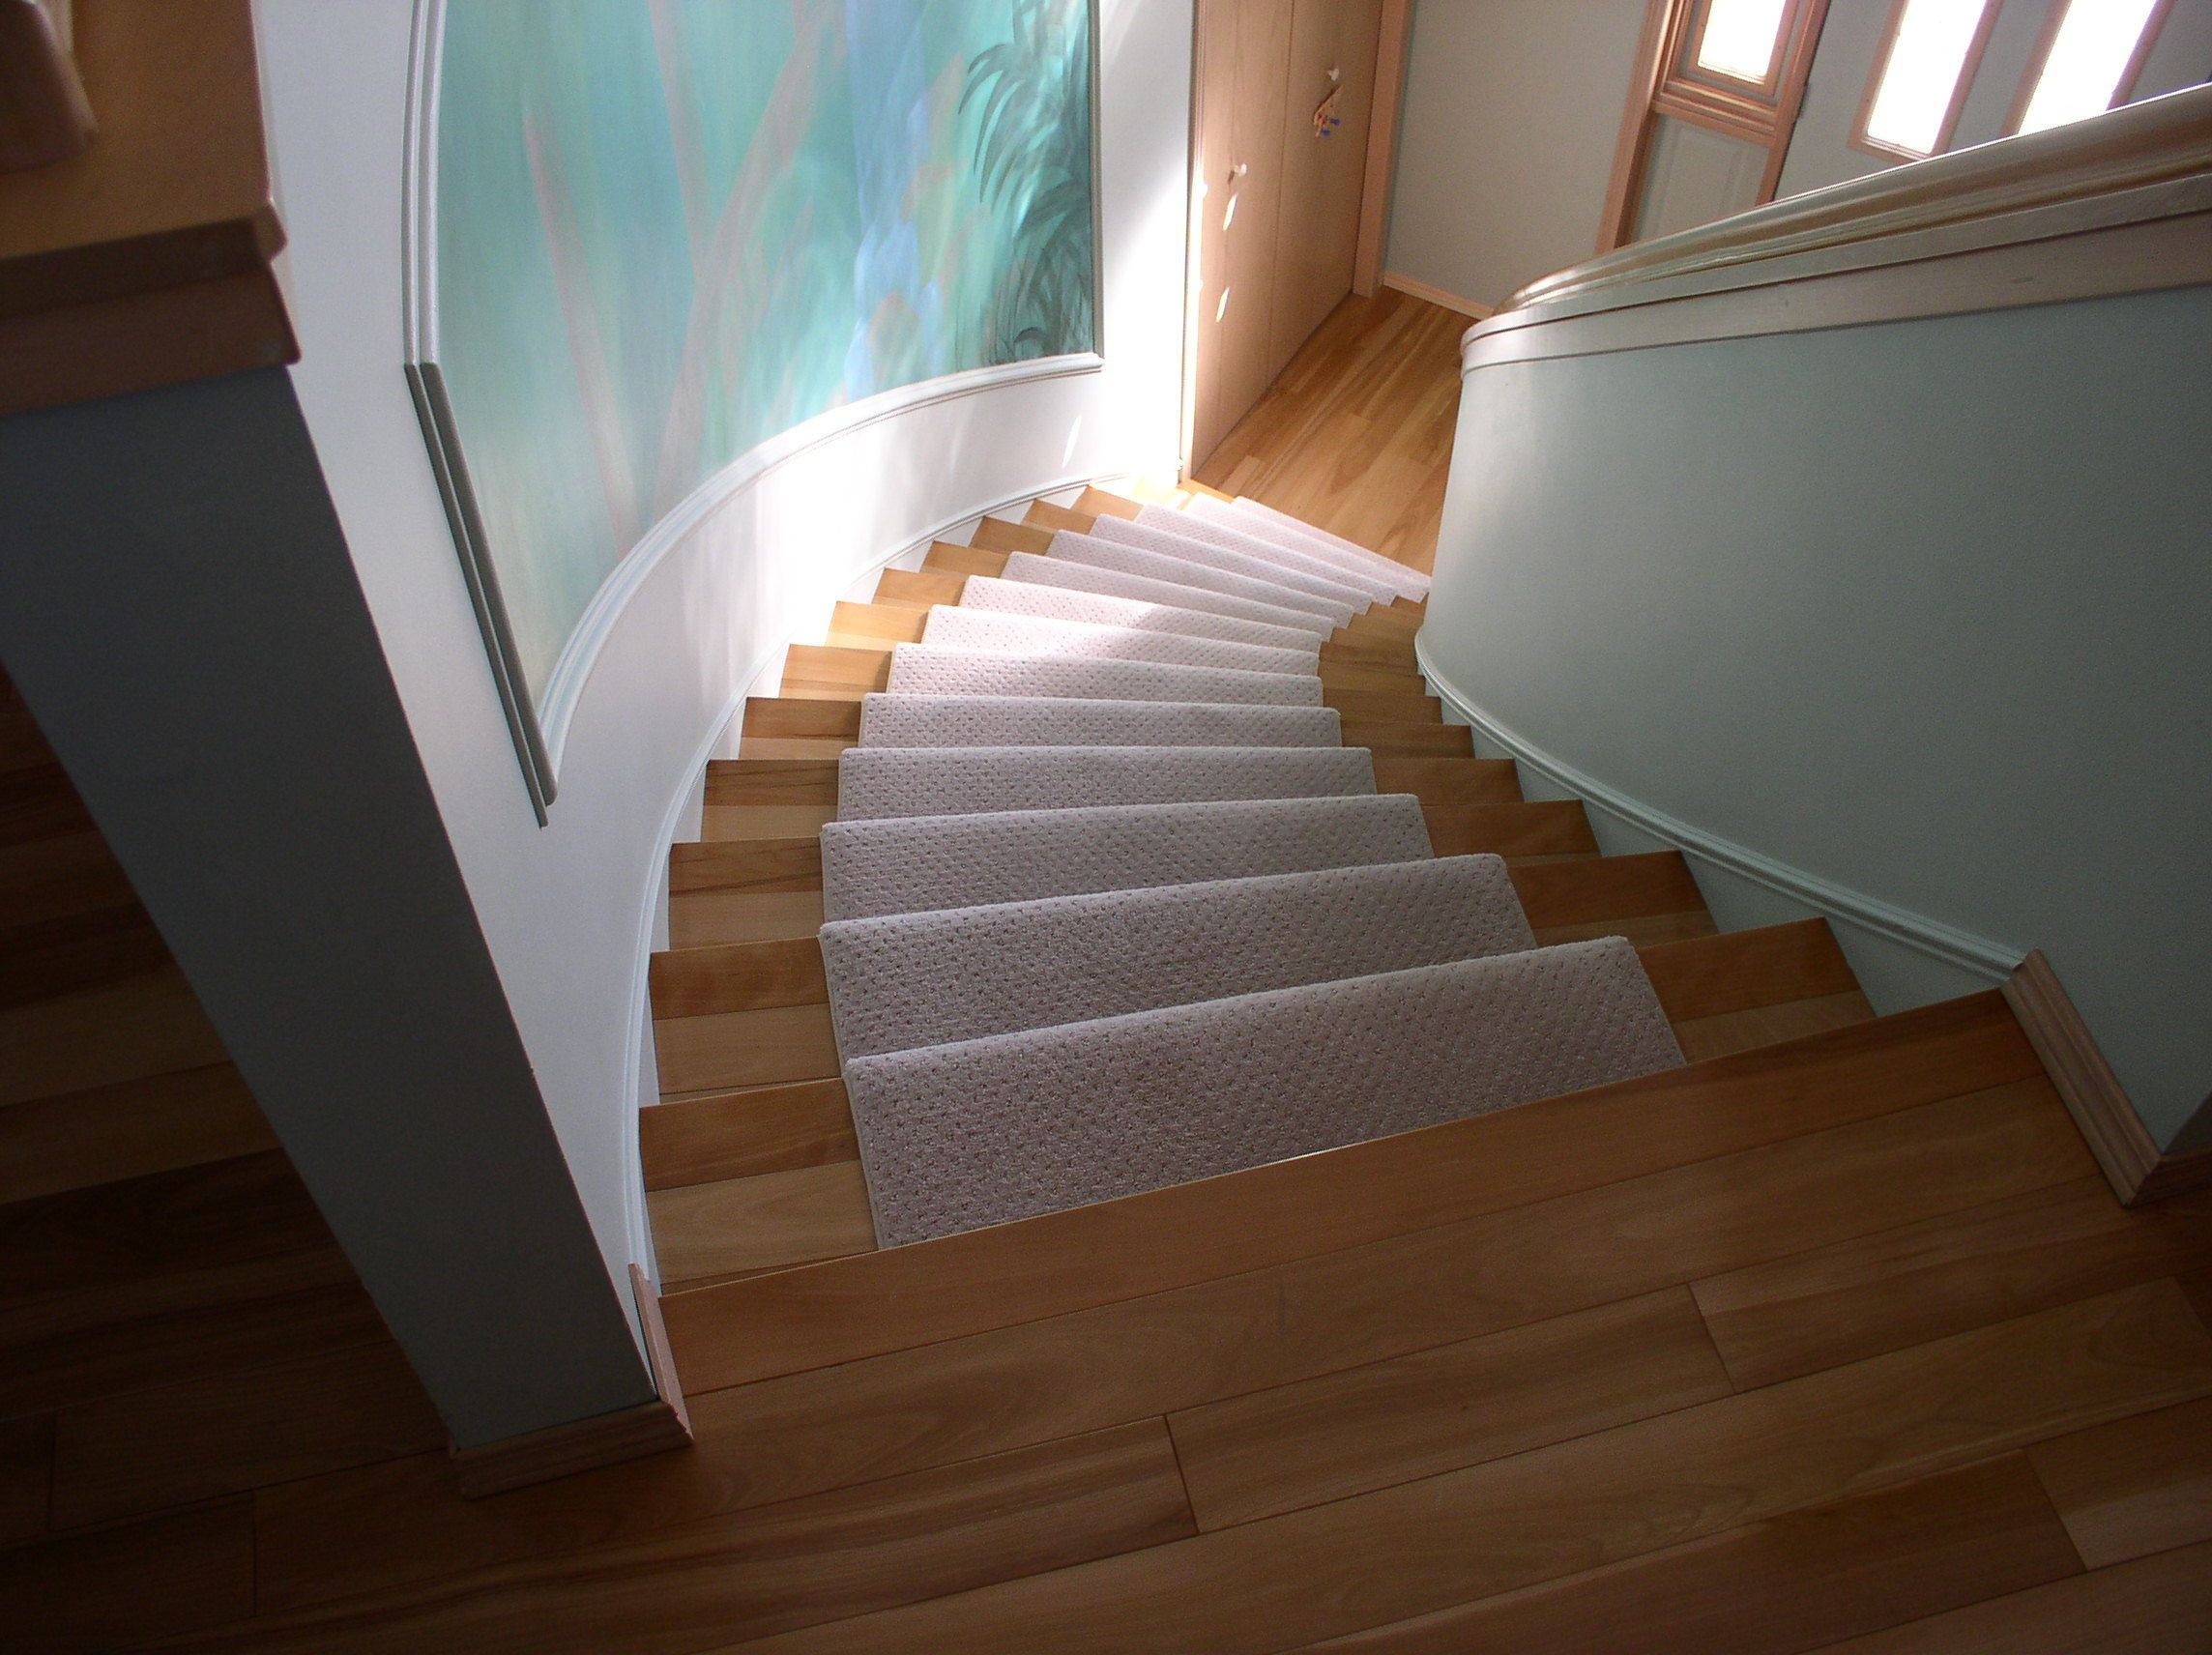 How to Install Engineered Hardwood Flooring On Stairs Of Friesen Floor Decor Preverco Yellow Birch Merisier Variation 3 Pertaining to Friesen Floor Decor Preverco Yellow Birch Merisier Variation 3 1